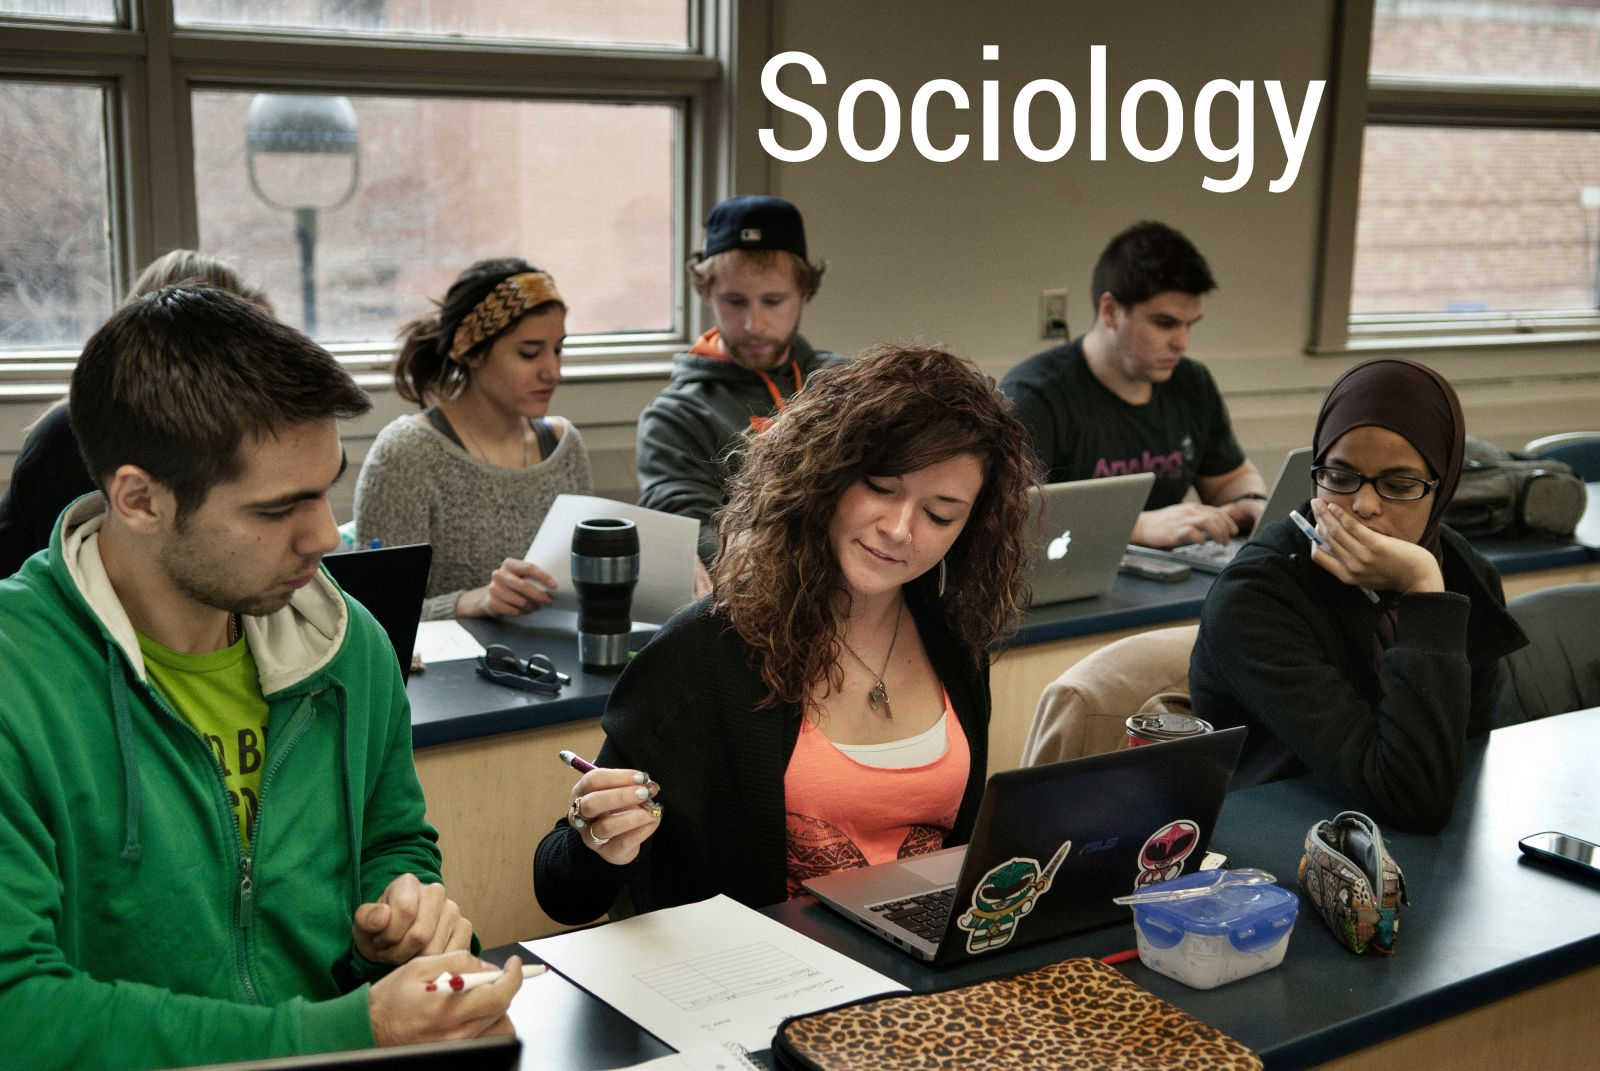 ba sociology Sociology (ba) apply now plan a visit the major in sociology encourages each student, based on their interests, to develop a creative combination of courses from the thematic areas offered.